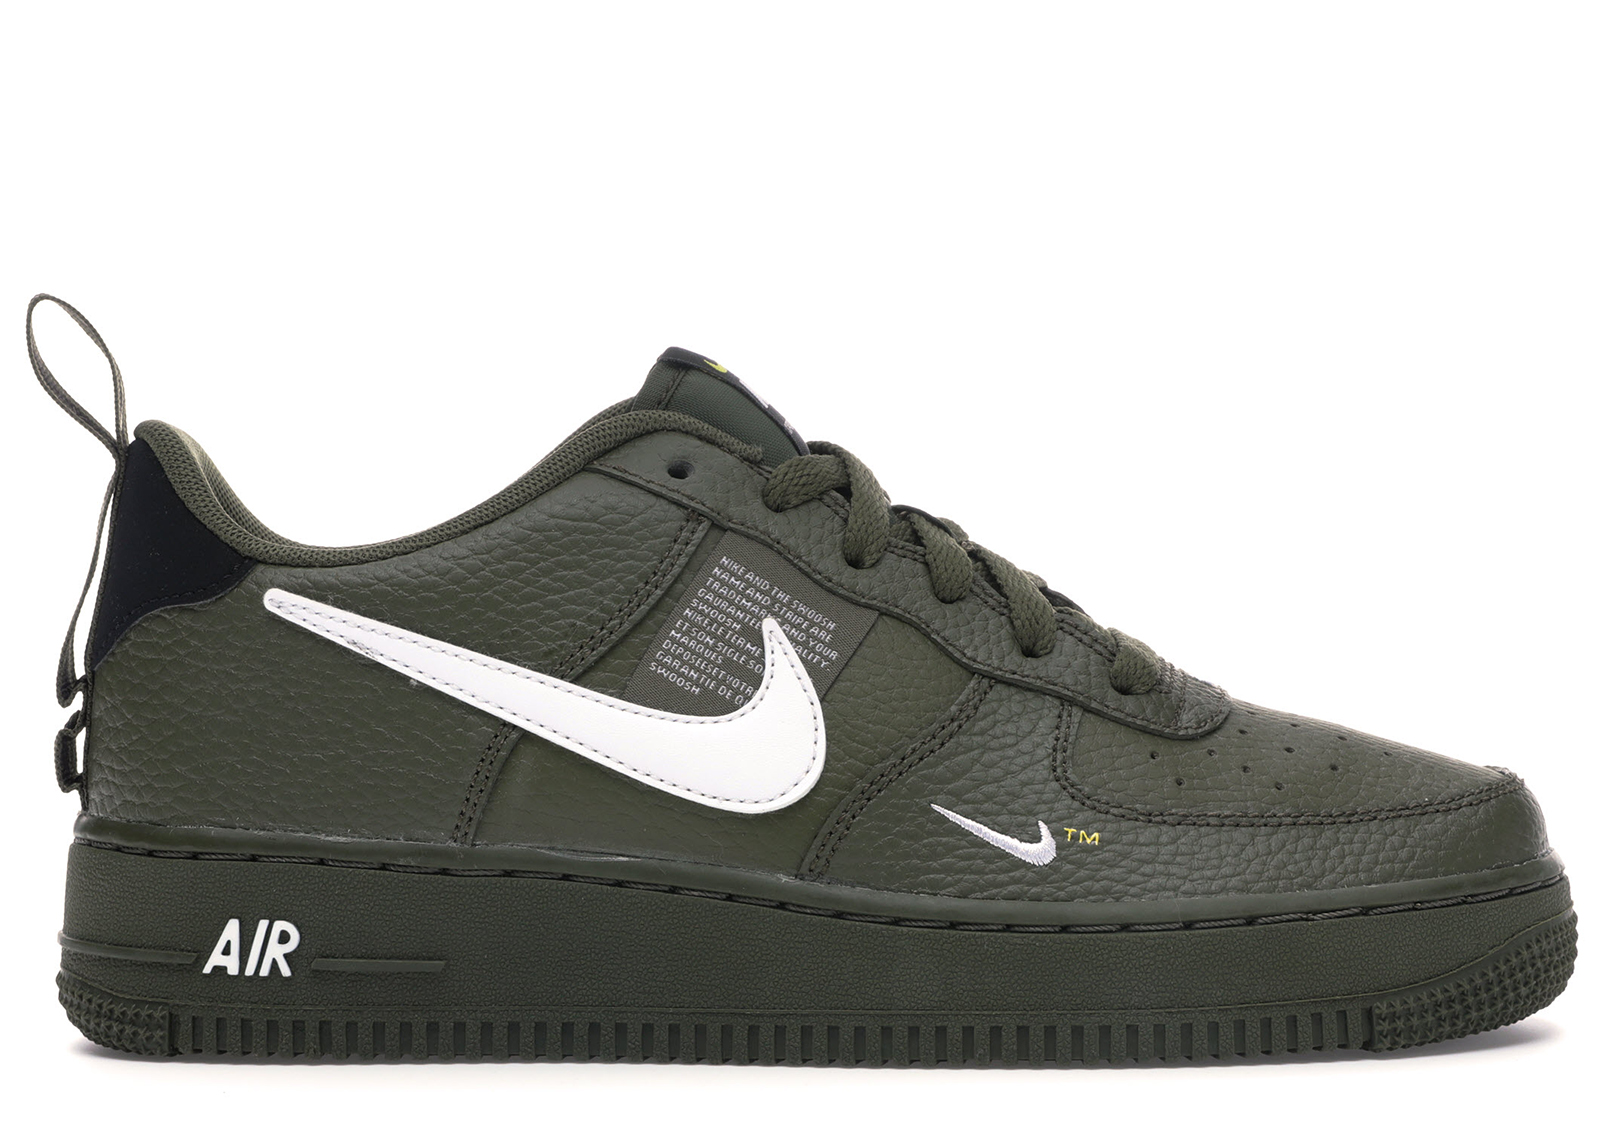 Nike Air Force 1 Low Utility Olive Canvas (GS)